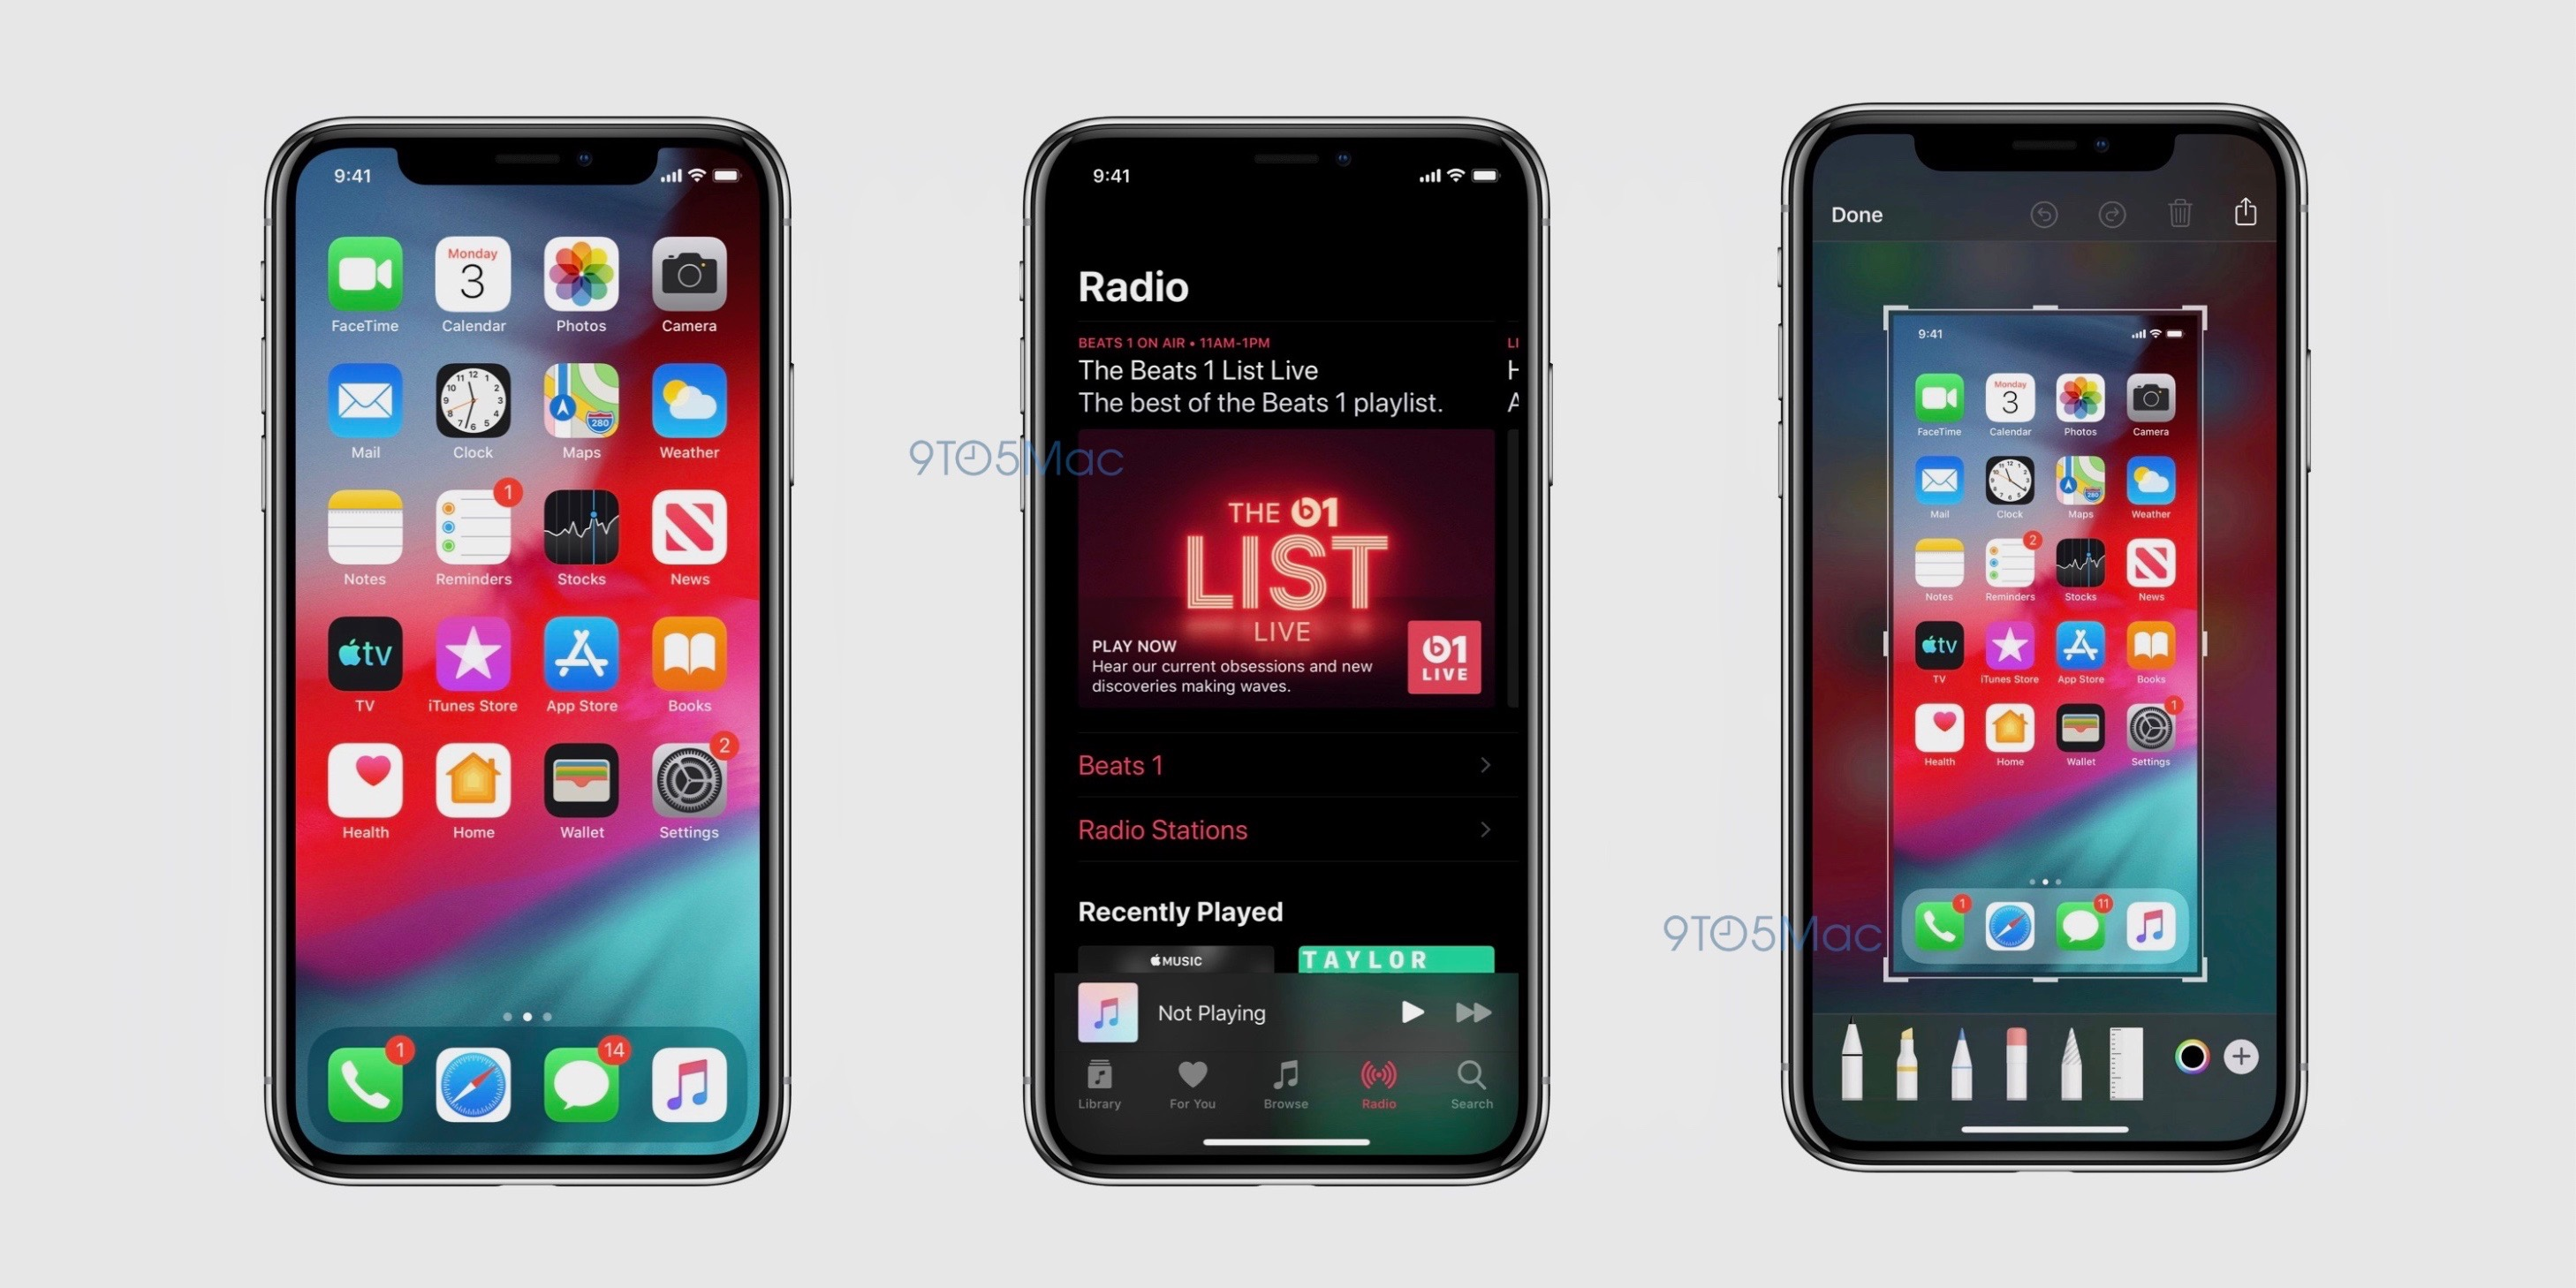 Exclusive screenshots reveal iOS 13 Dark Mode and more - 9to5Mac